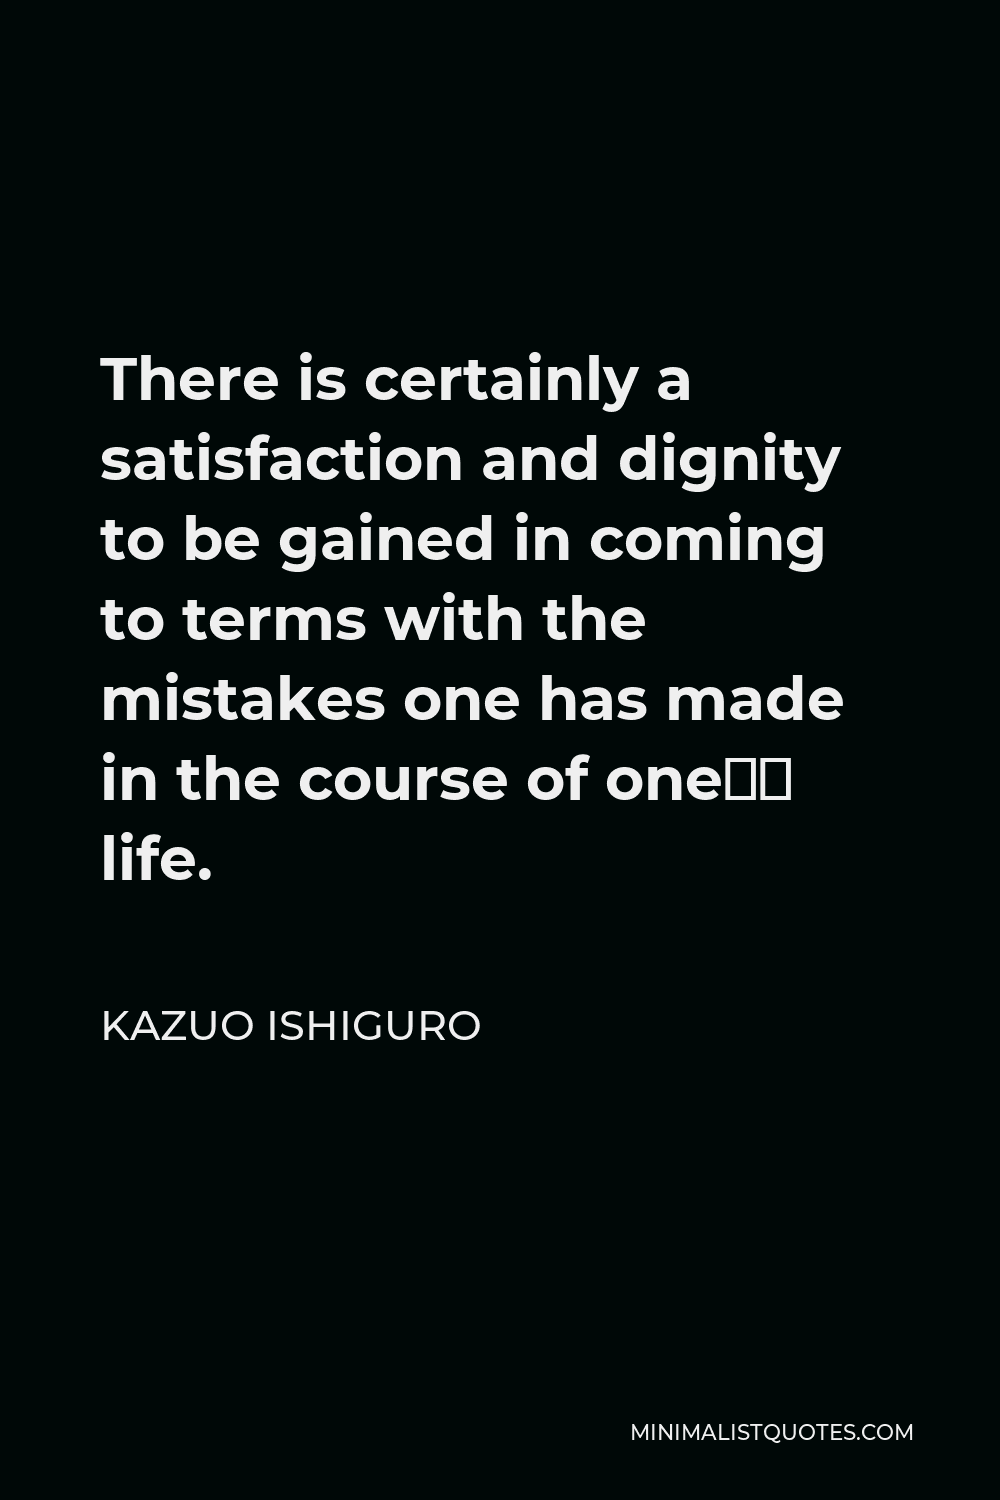 Kazuo Ishiguro Quote - There is certainly a satisfaction and dignity to be gained in coming to terms with the mistakes one has made in the course of one's life.